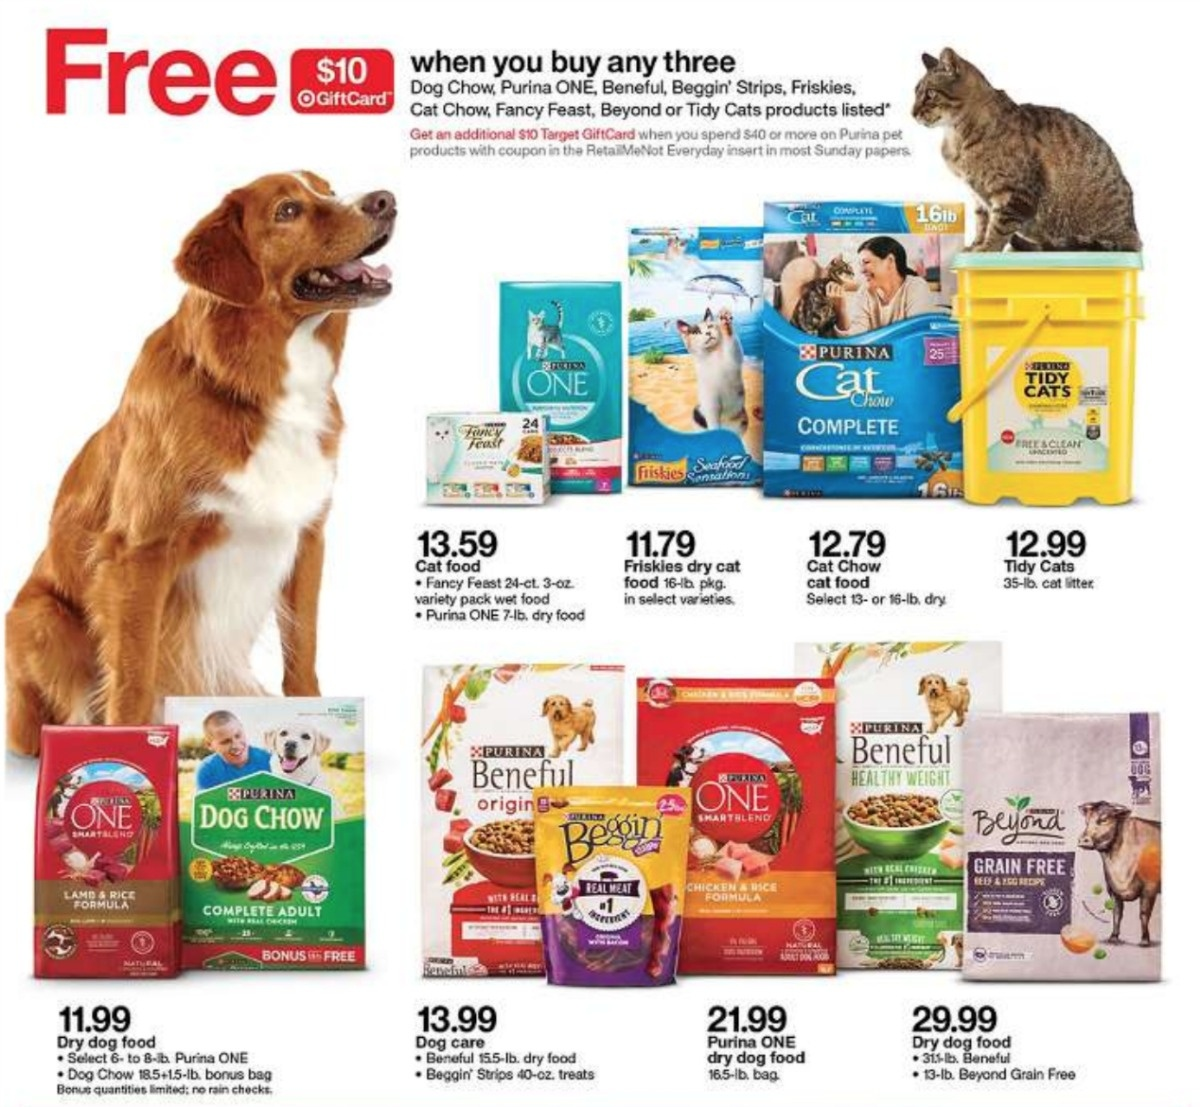 $20 Target Gift Card With $40 Purina Pet Purchase :: Southern Savers - Free Printable Coupons For Purina One Dog Food